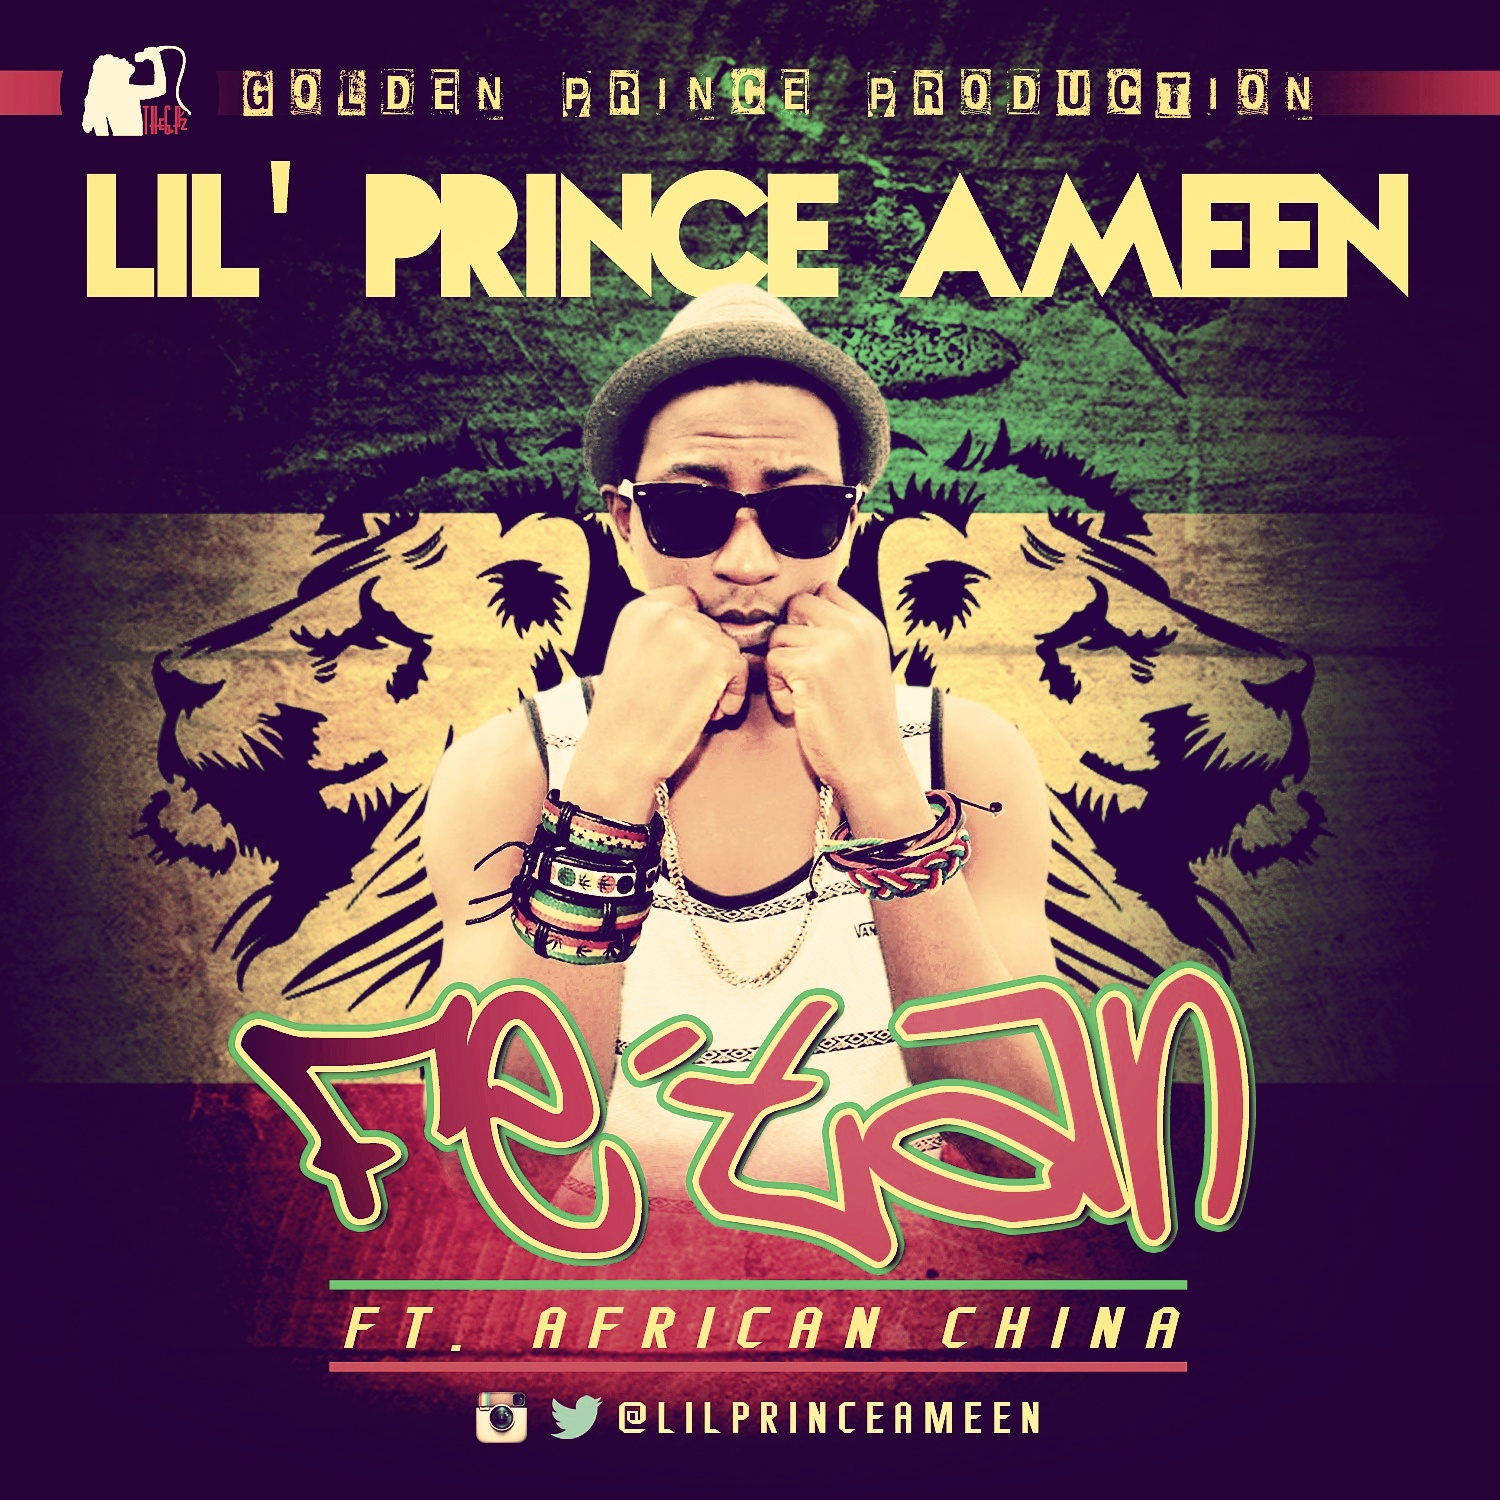 """Lil' Prince Ameen: """"Fe'tan"""" (featuring African China)  & """"Bless"""" (songs)"""